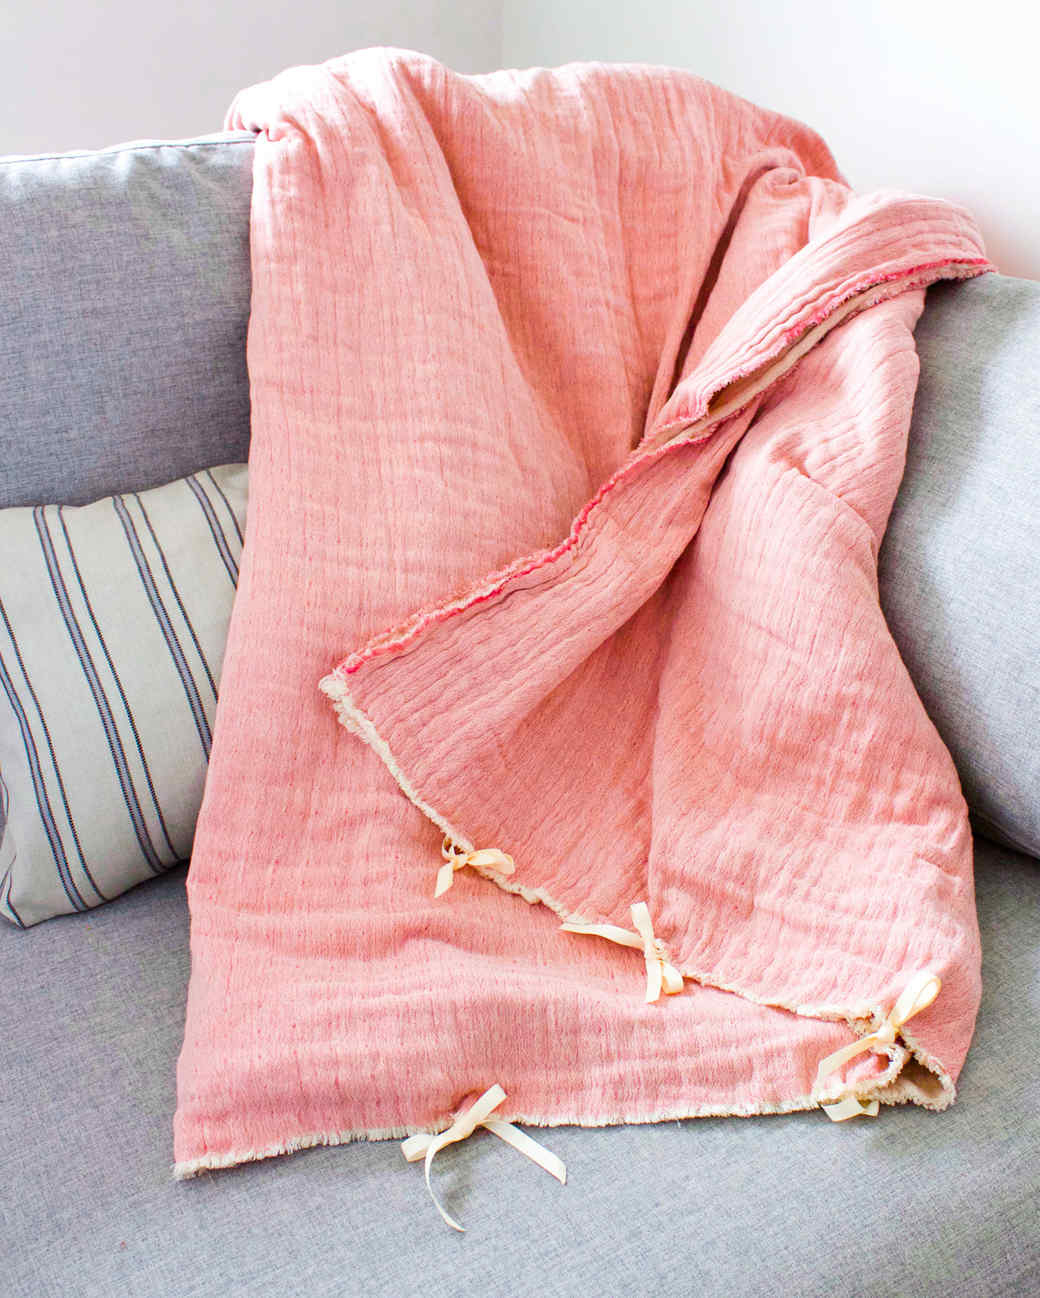 pink weighted blanket on gray couch